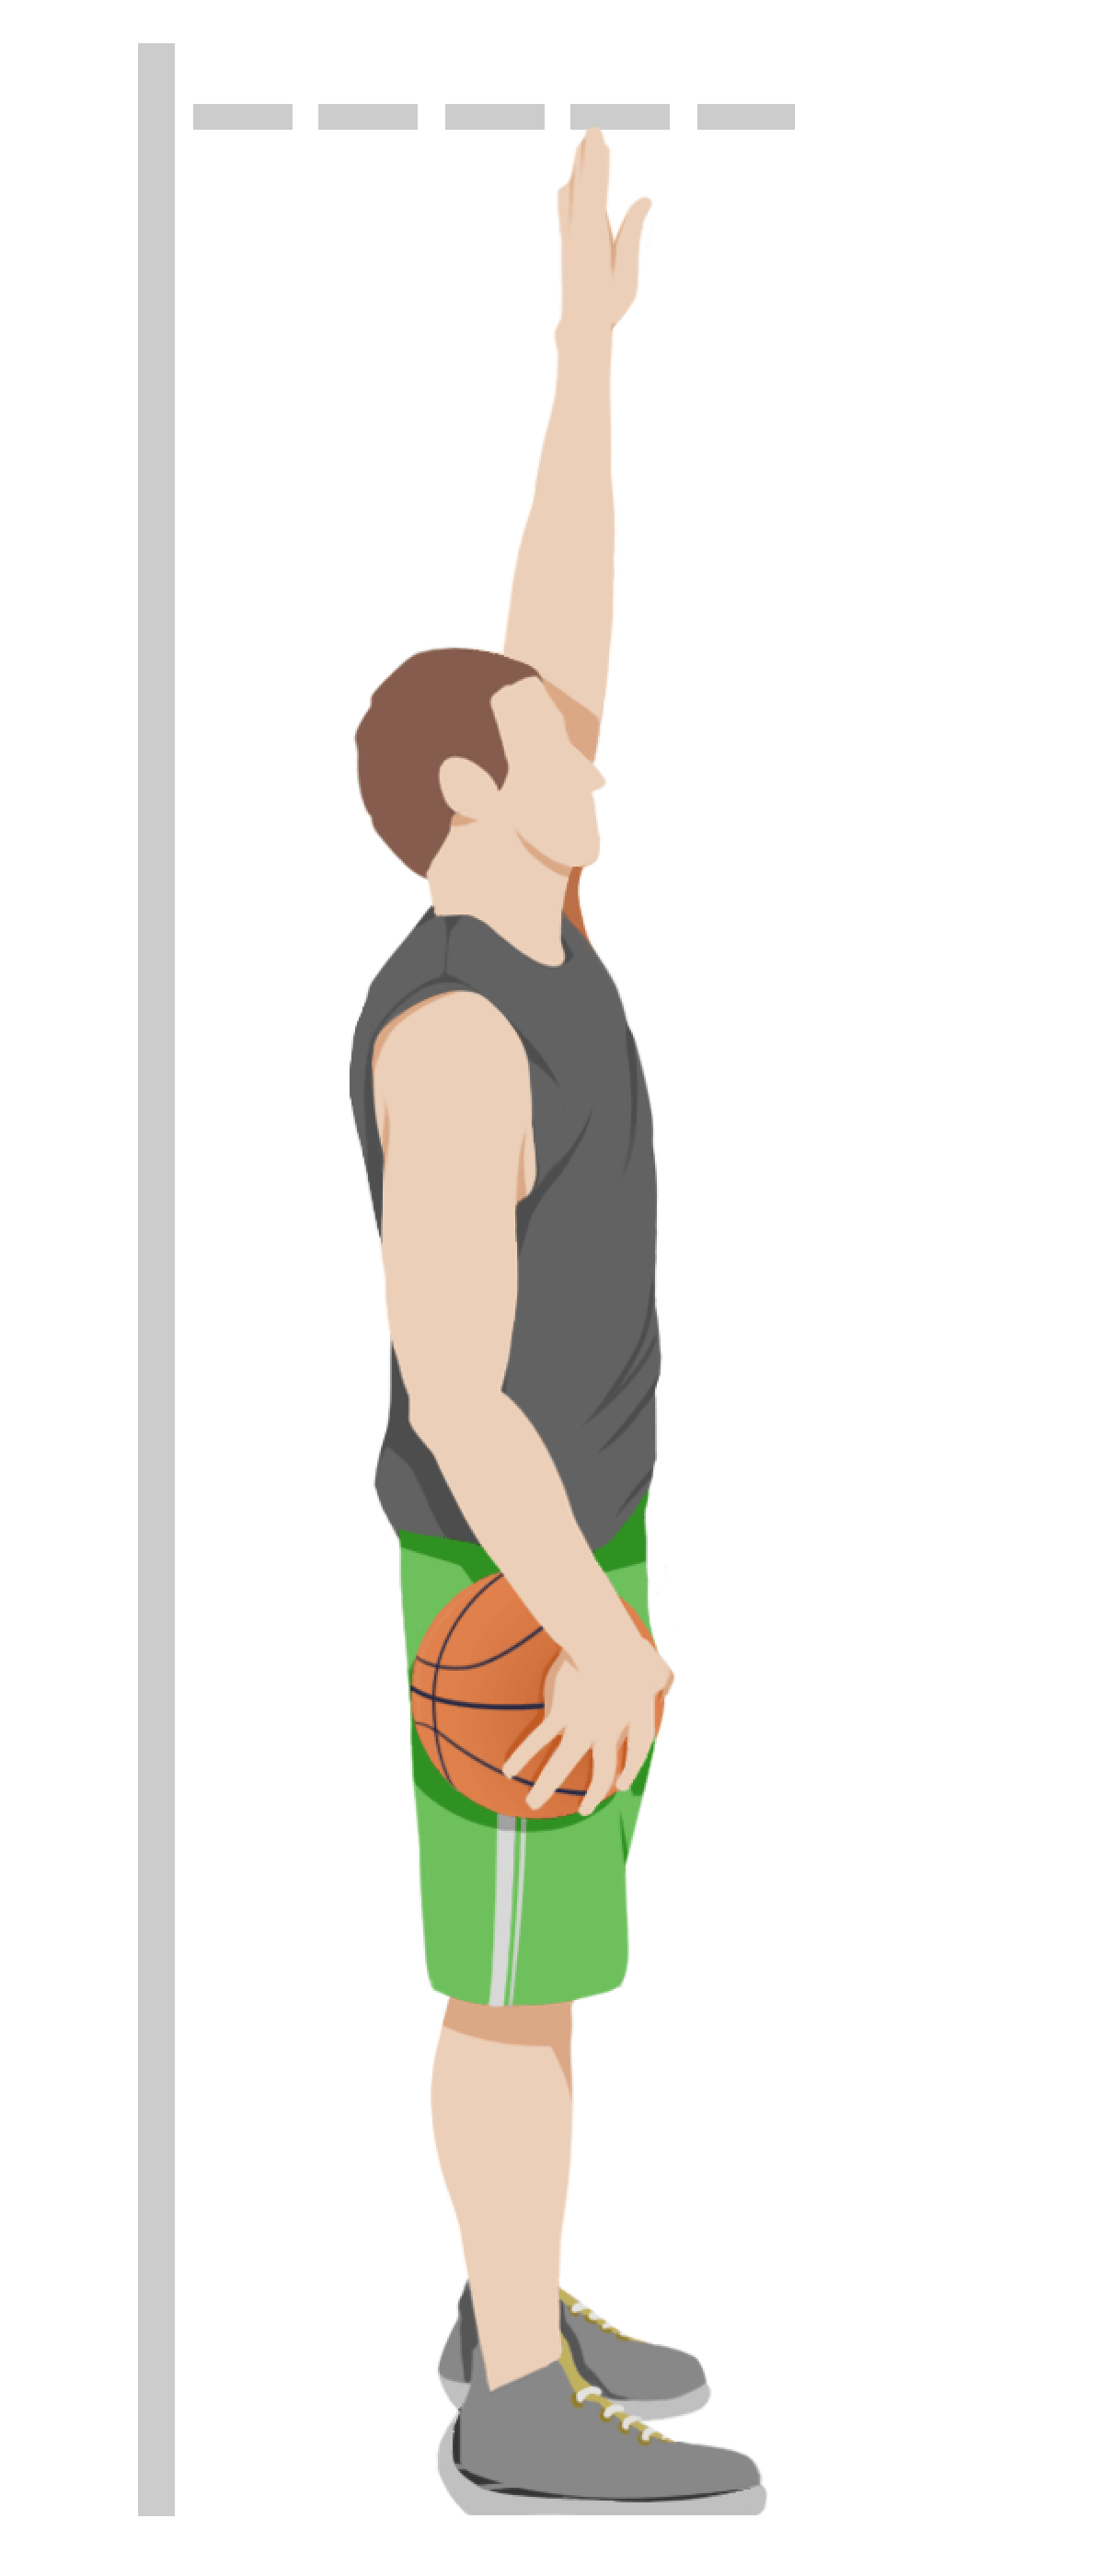 Basketball Player Measuring standing reach